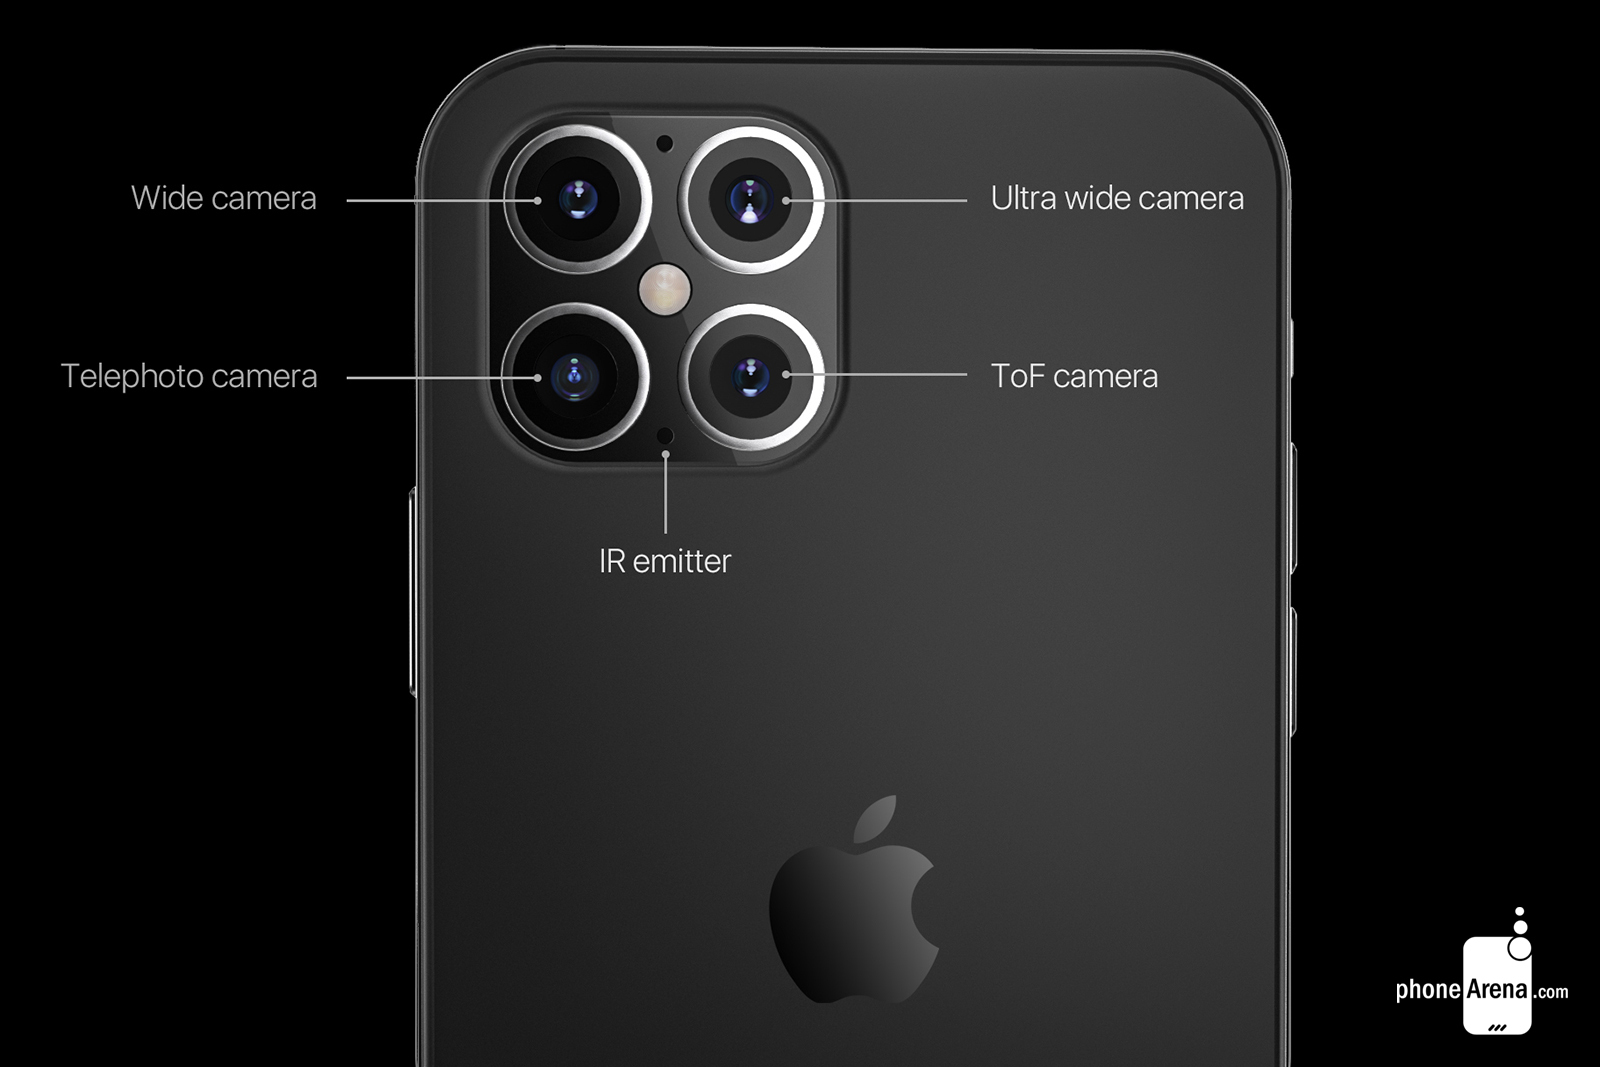 The iPhone 12's massive camera upgrade just leaked | Tom's Guide